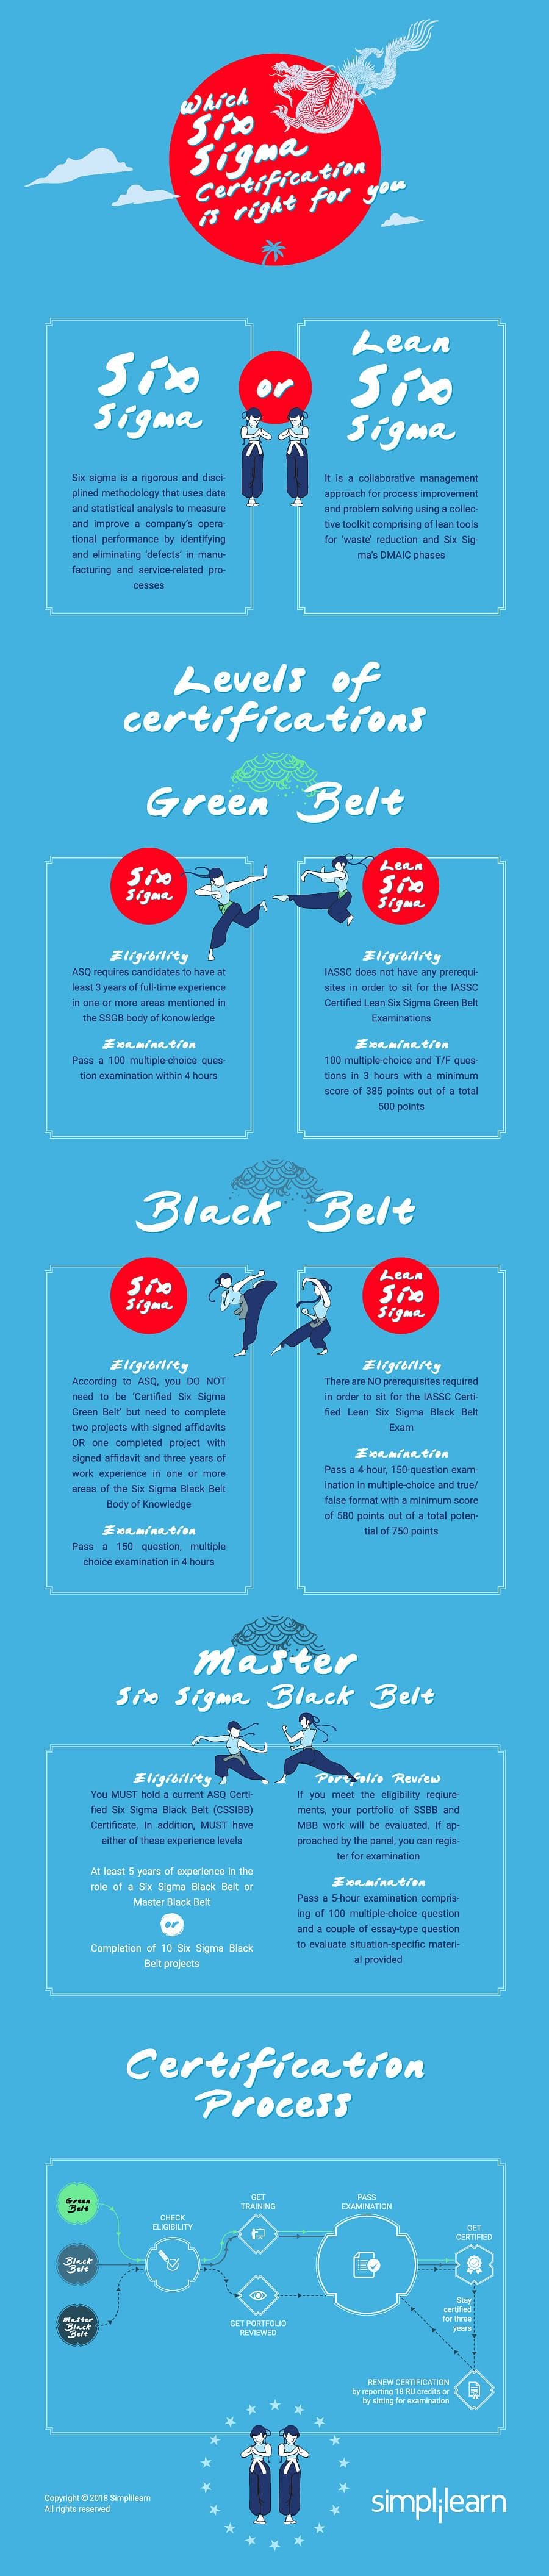 six-sigma-green-belt-infographic